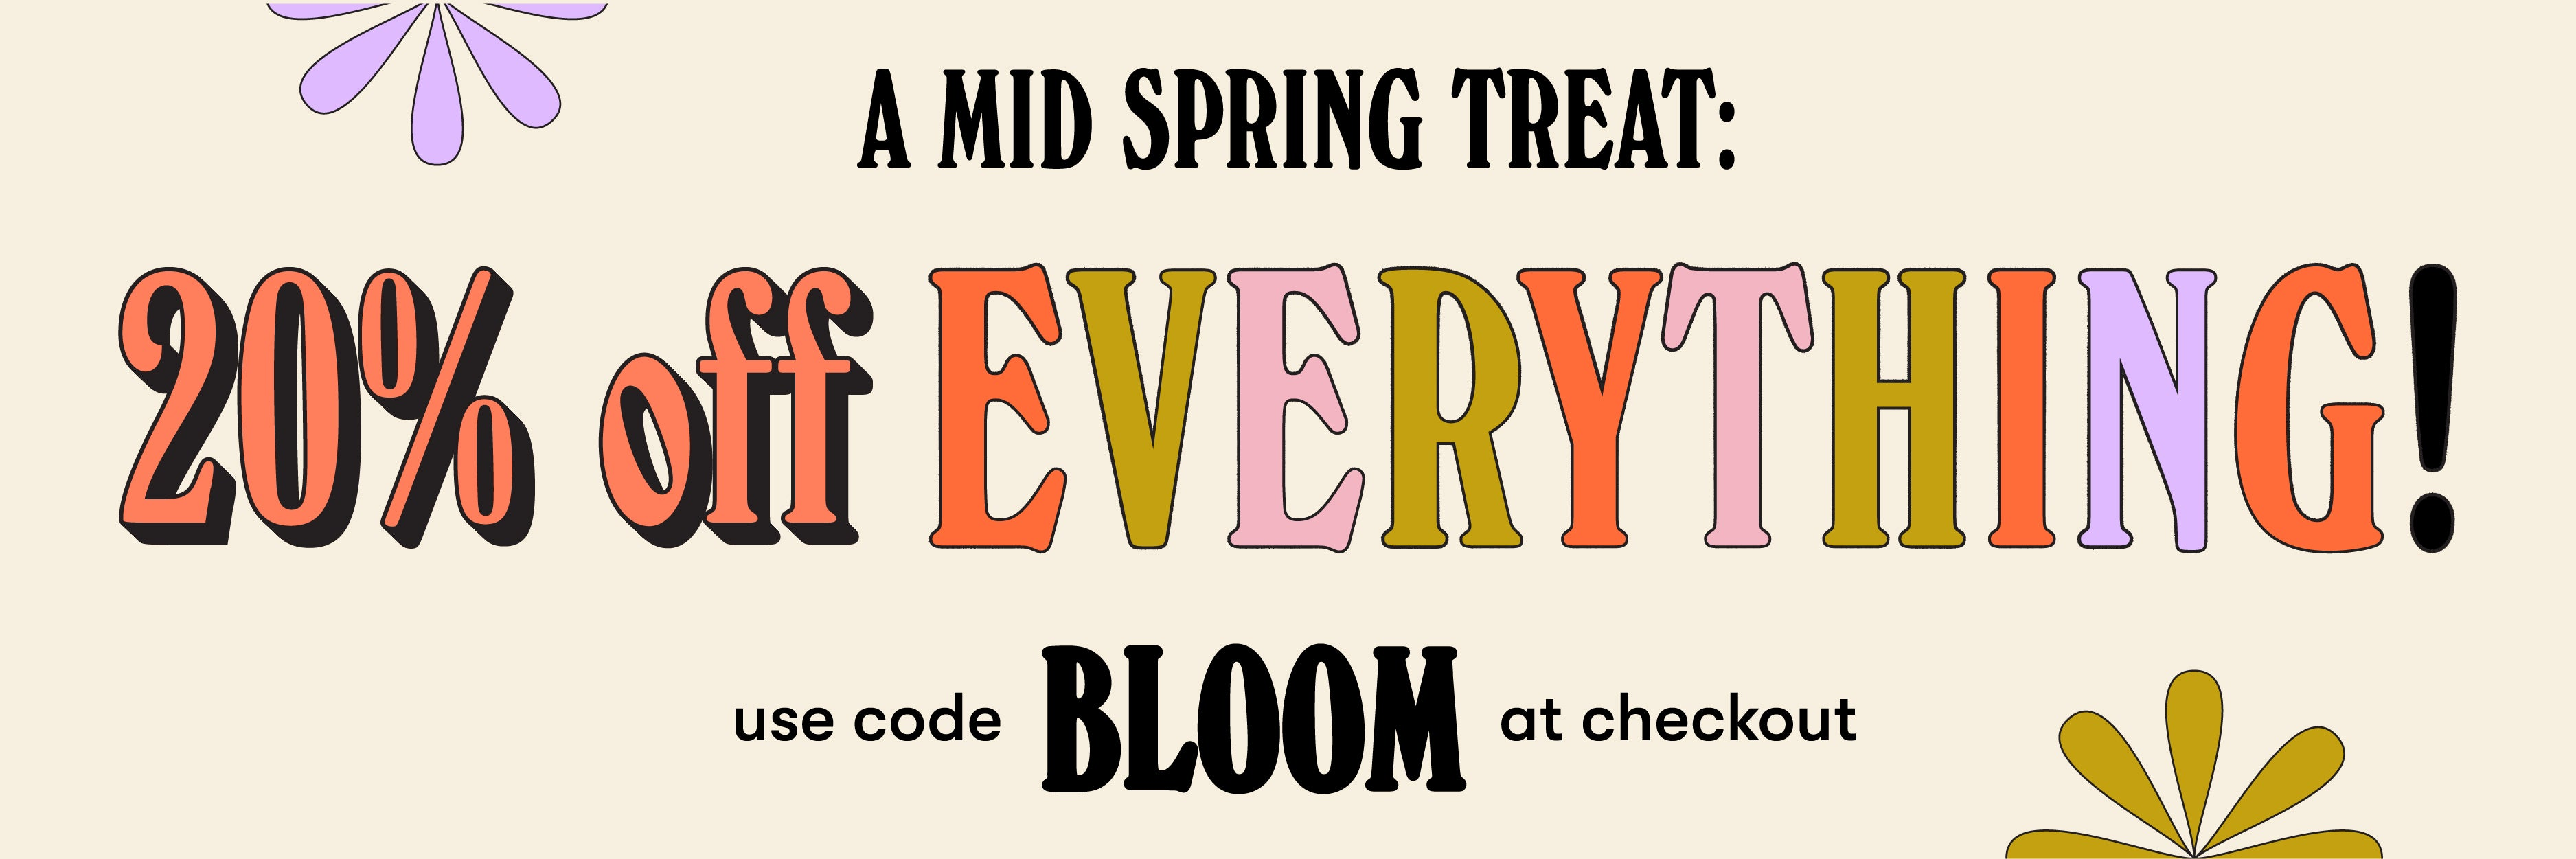 A Mid-Spring Treat:  20% Off Everything - Use code BLOOM at checkout.